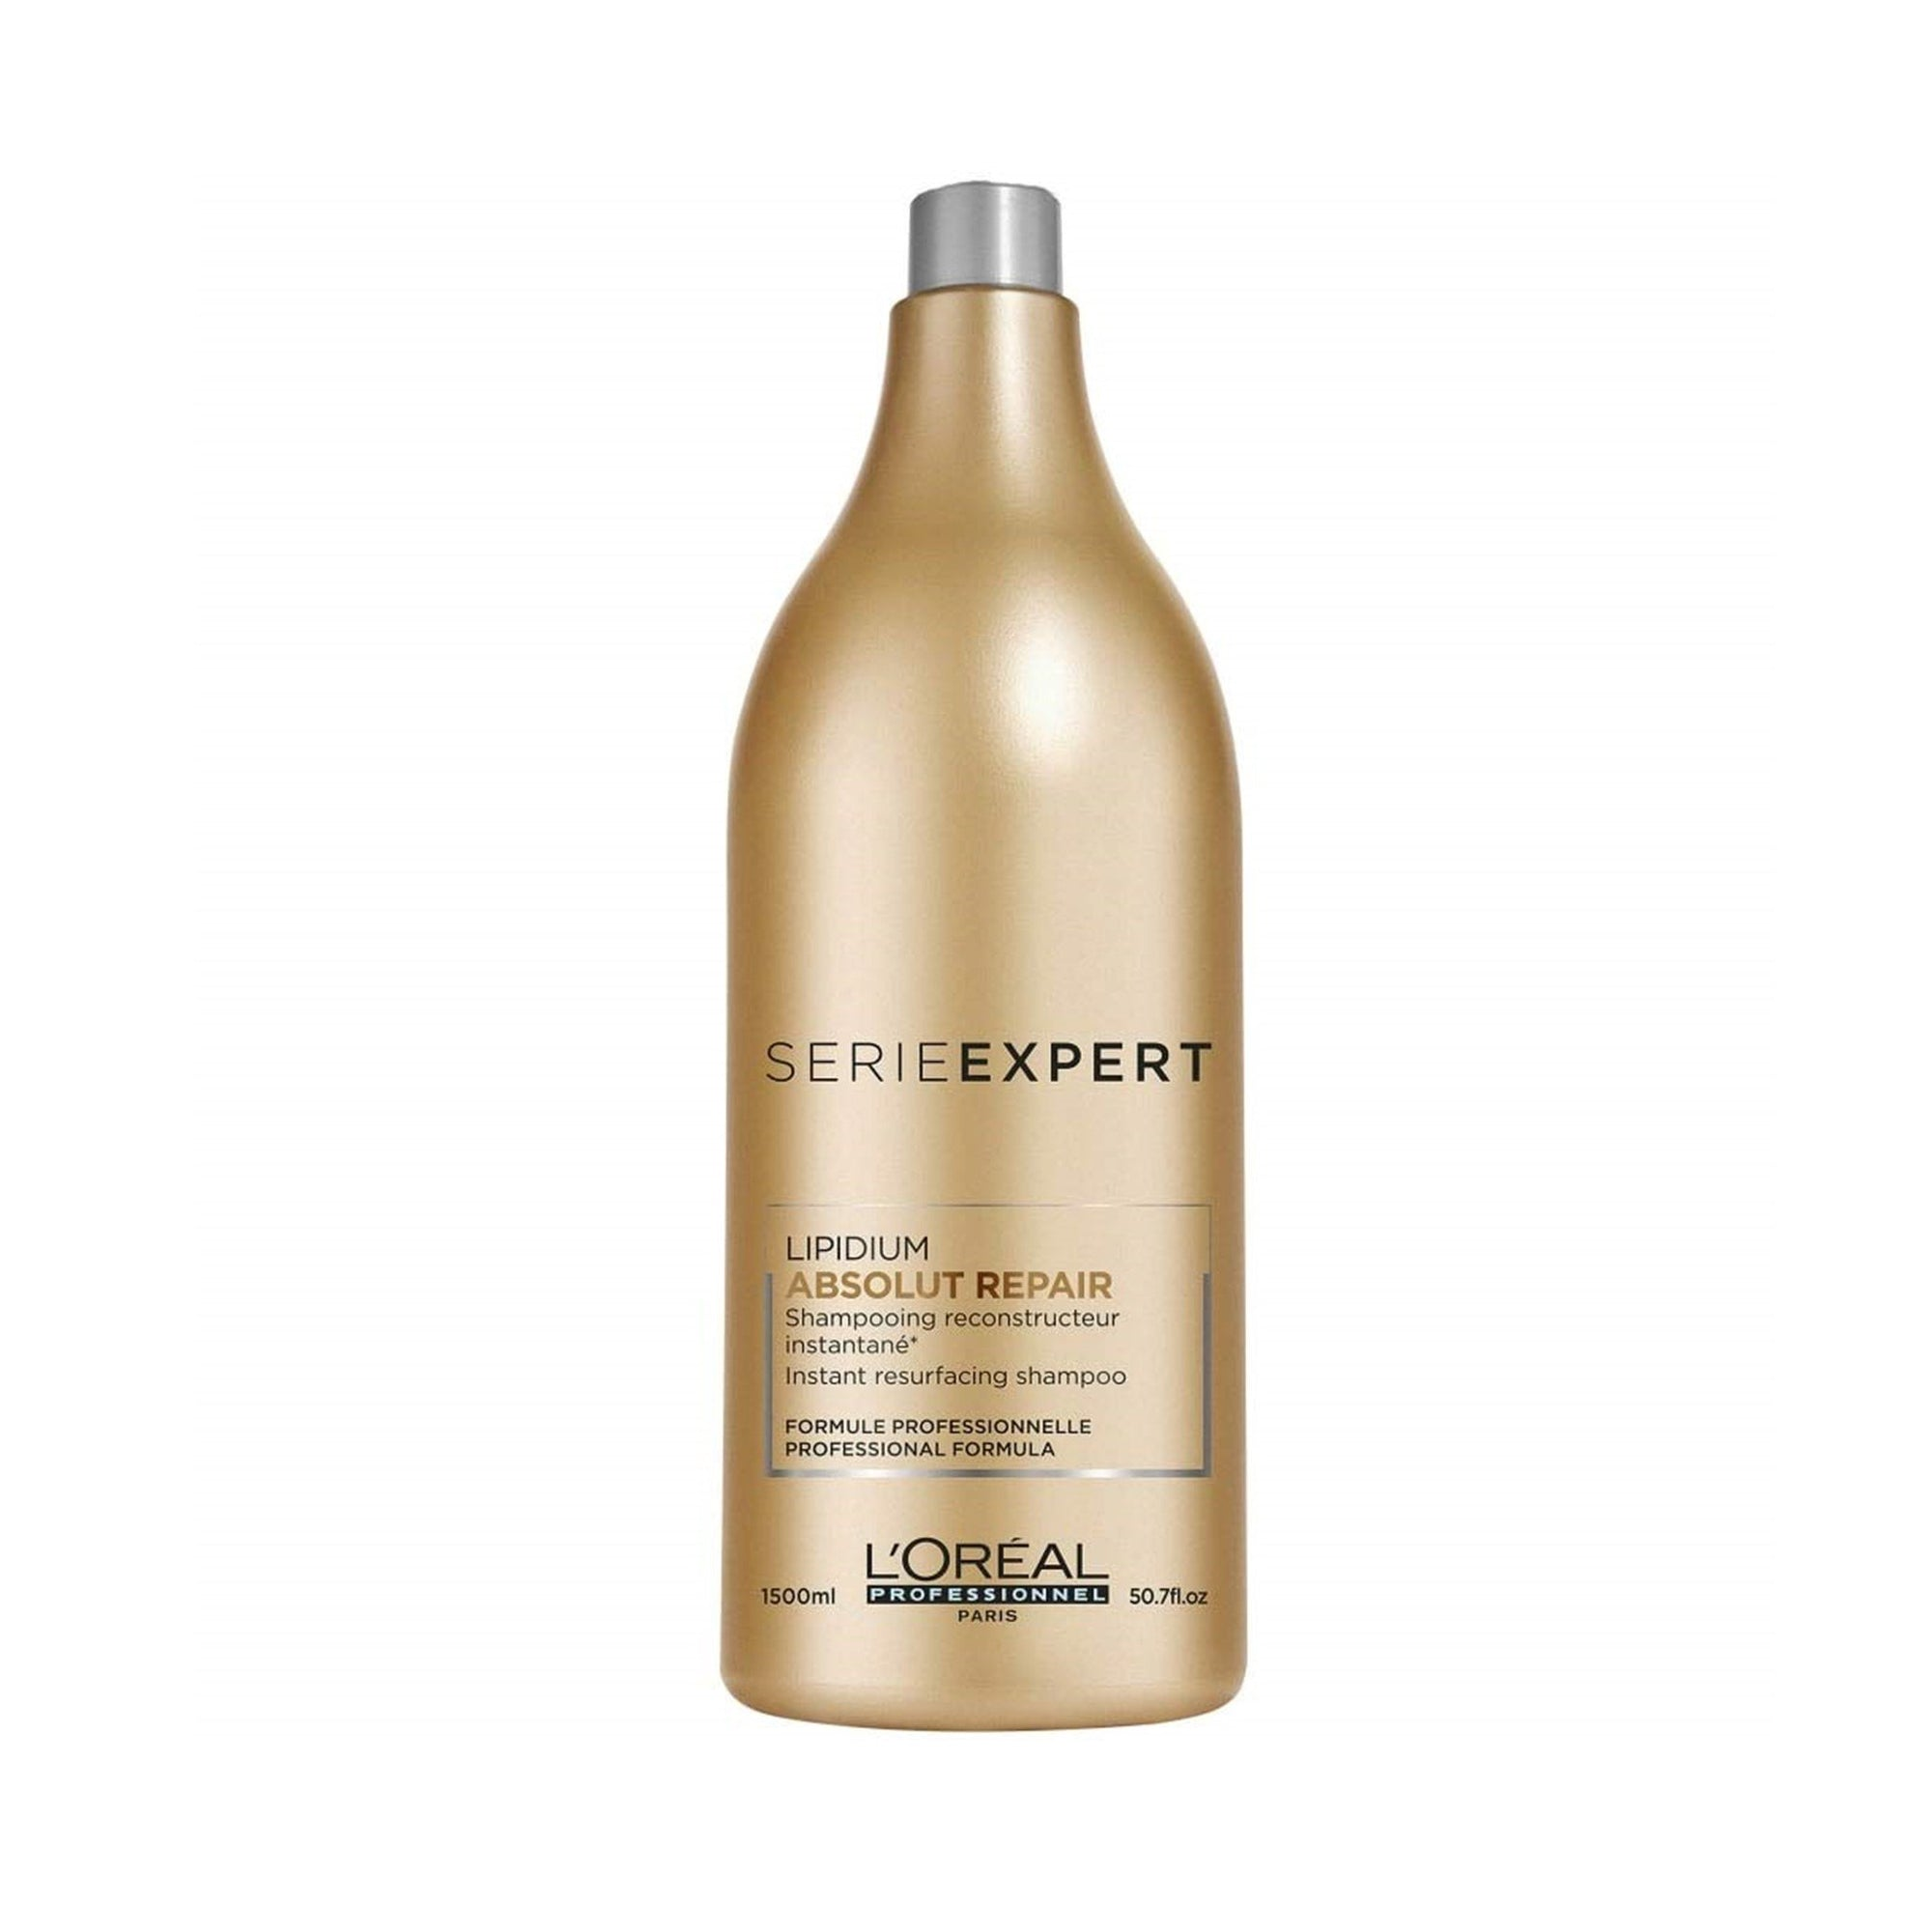 L'Oreal Professionnel Serie Expert - Absolut Repair Shampoo 1.5 Litre